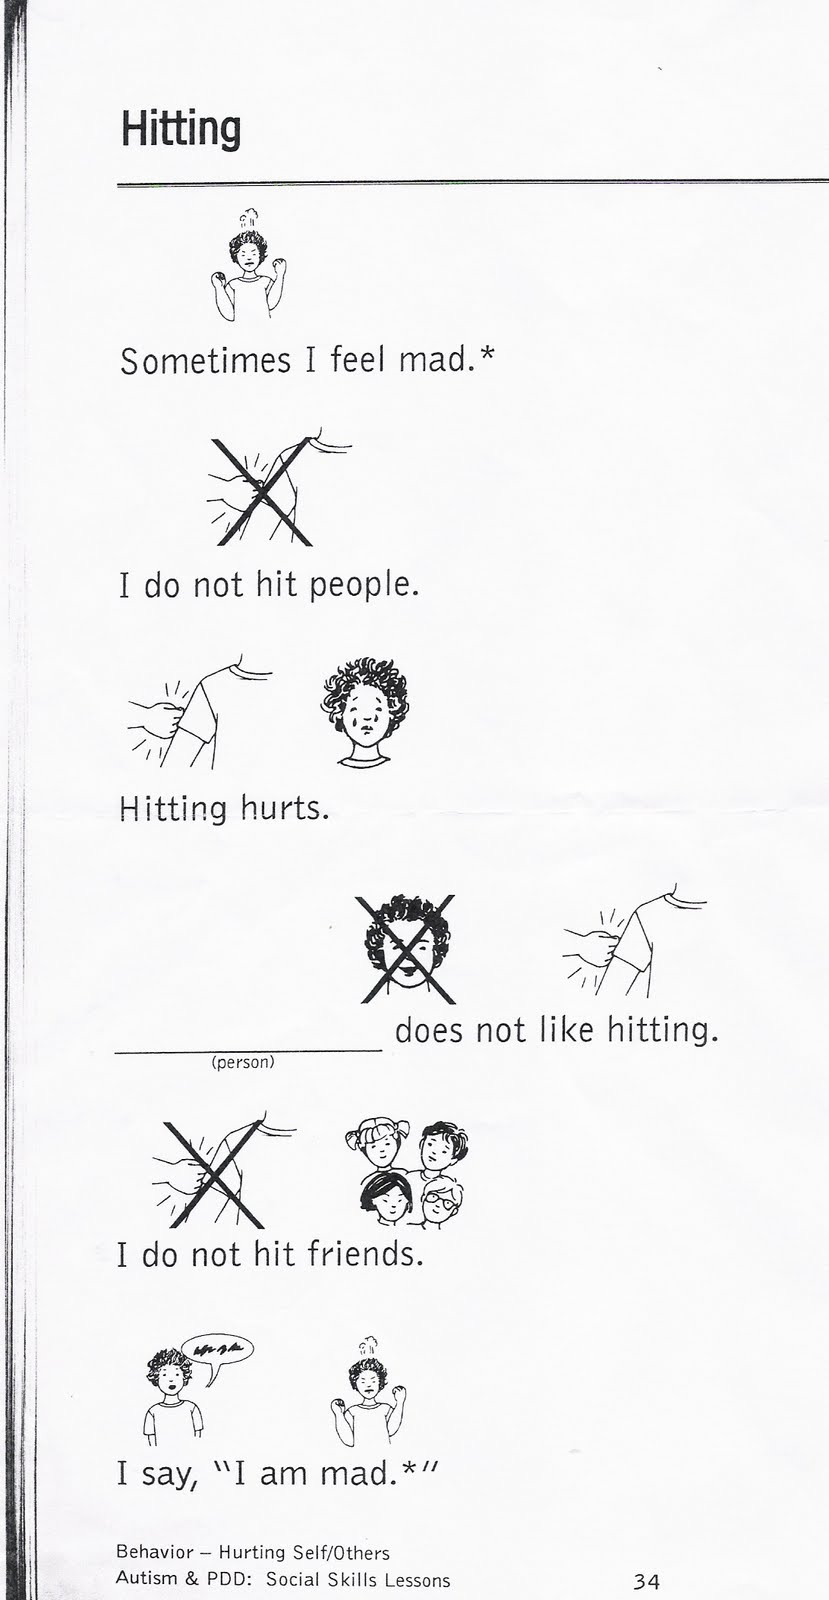 No Hitting No hitting! Images - Frompo